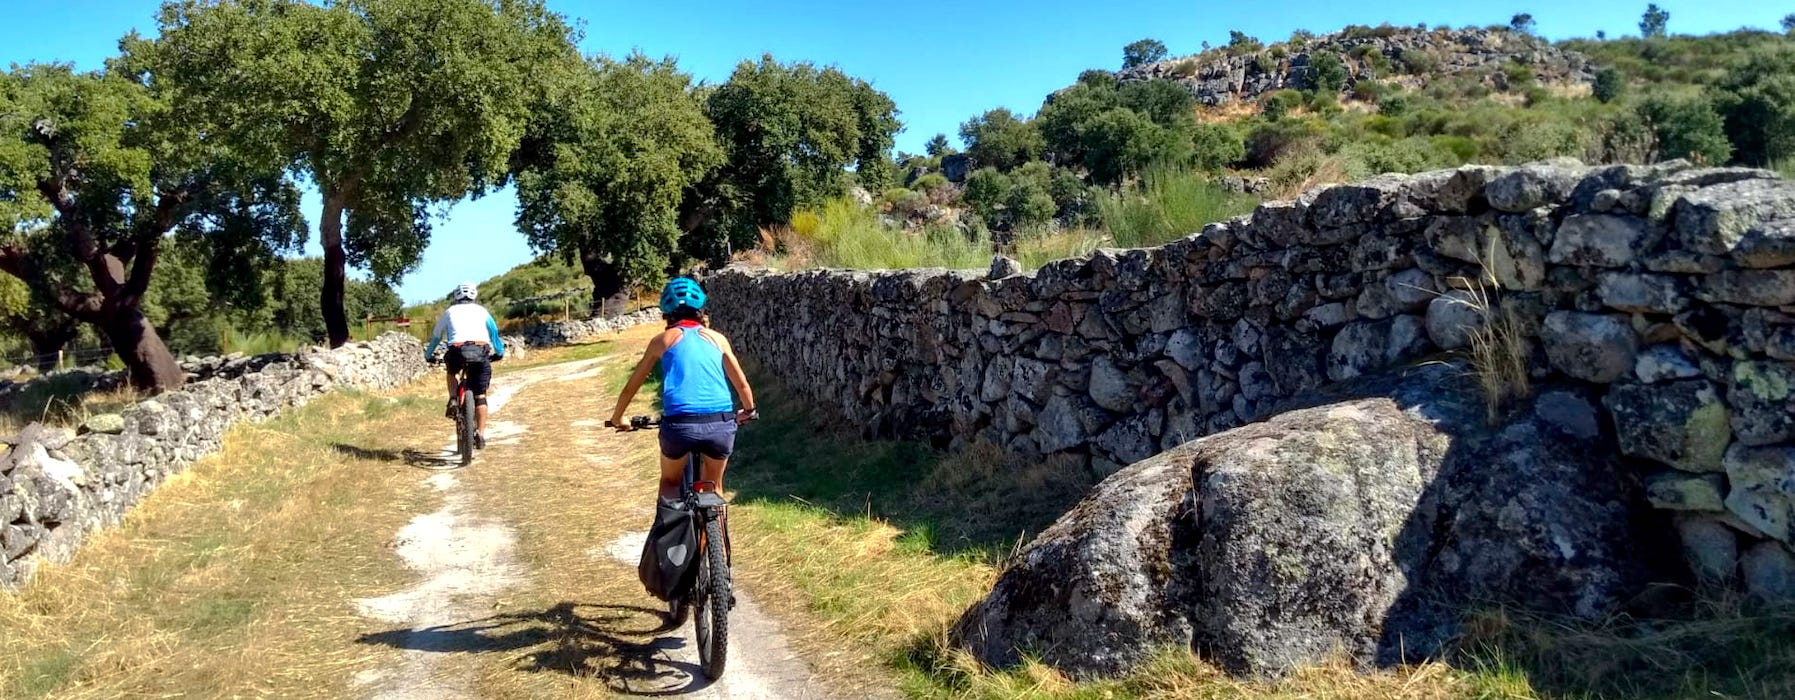 Bikers in trail with traditional stone wall